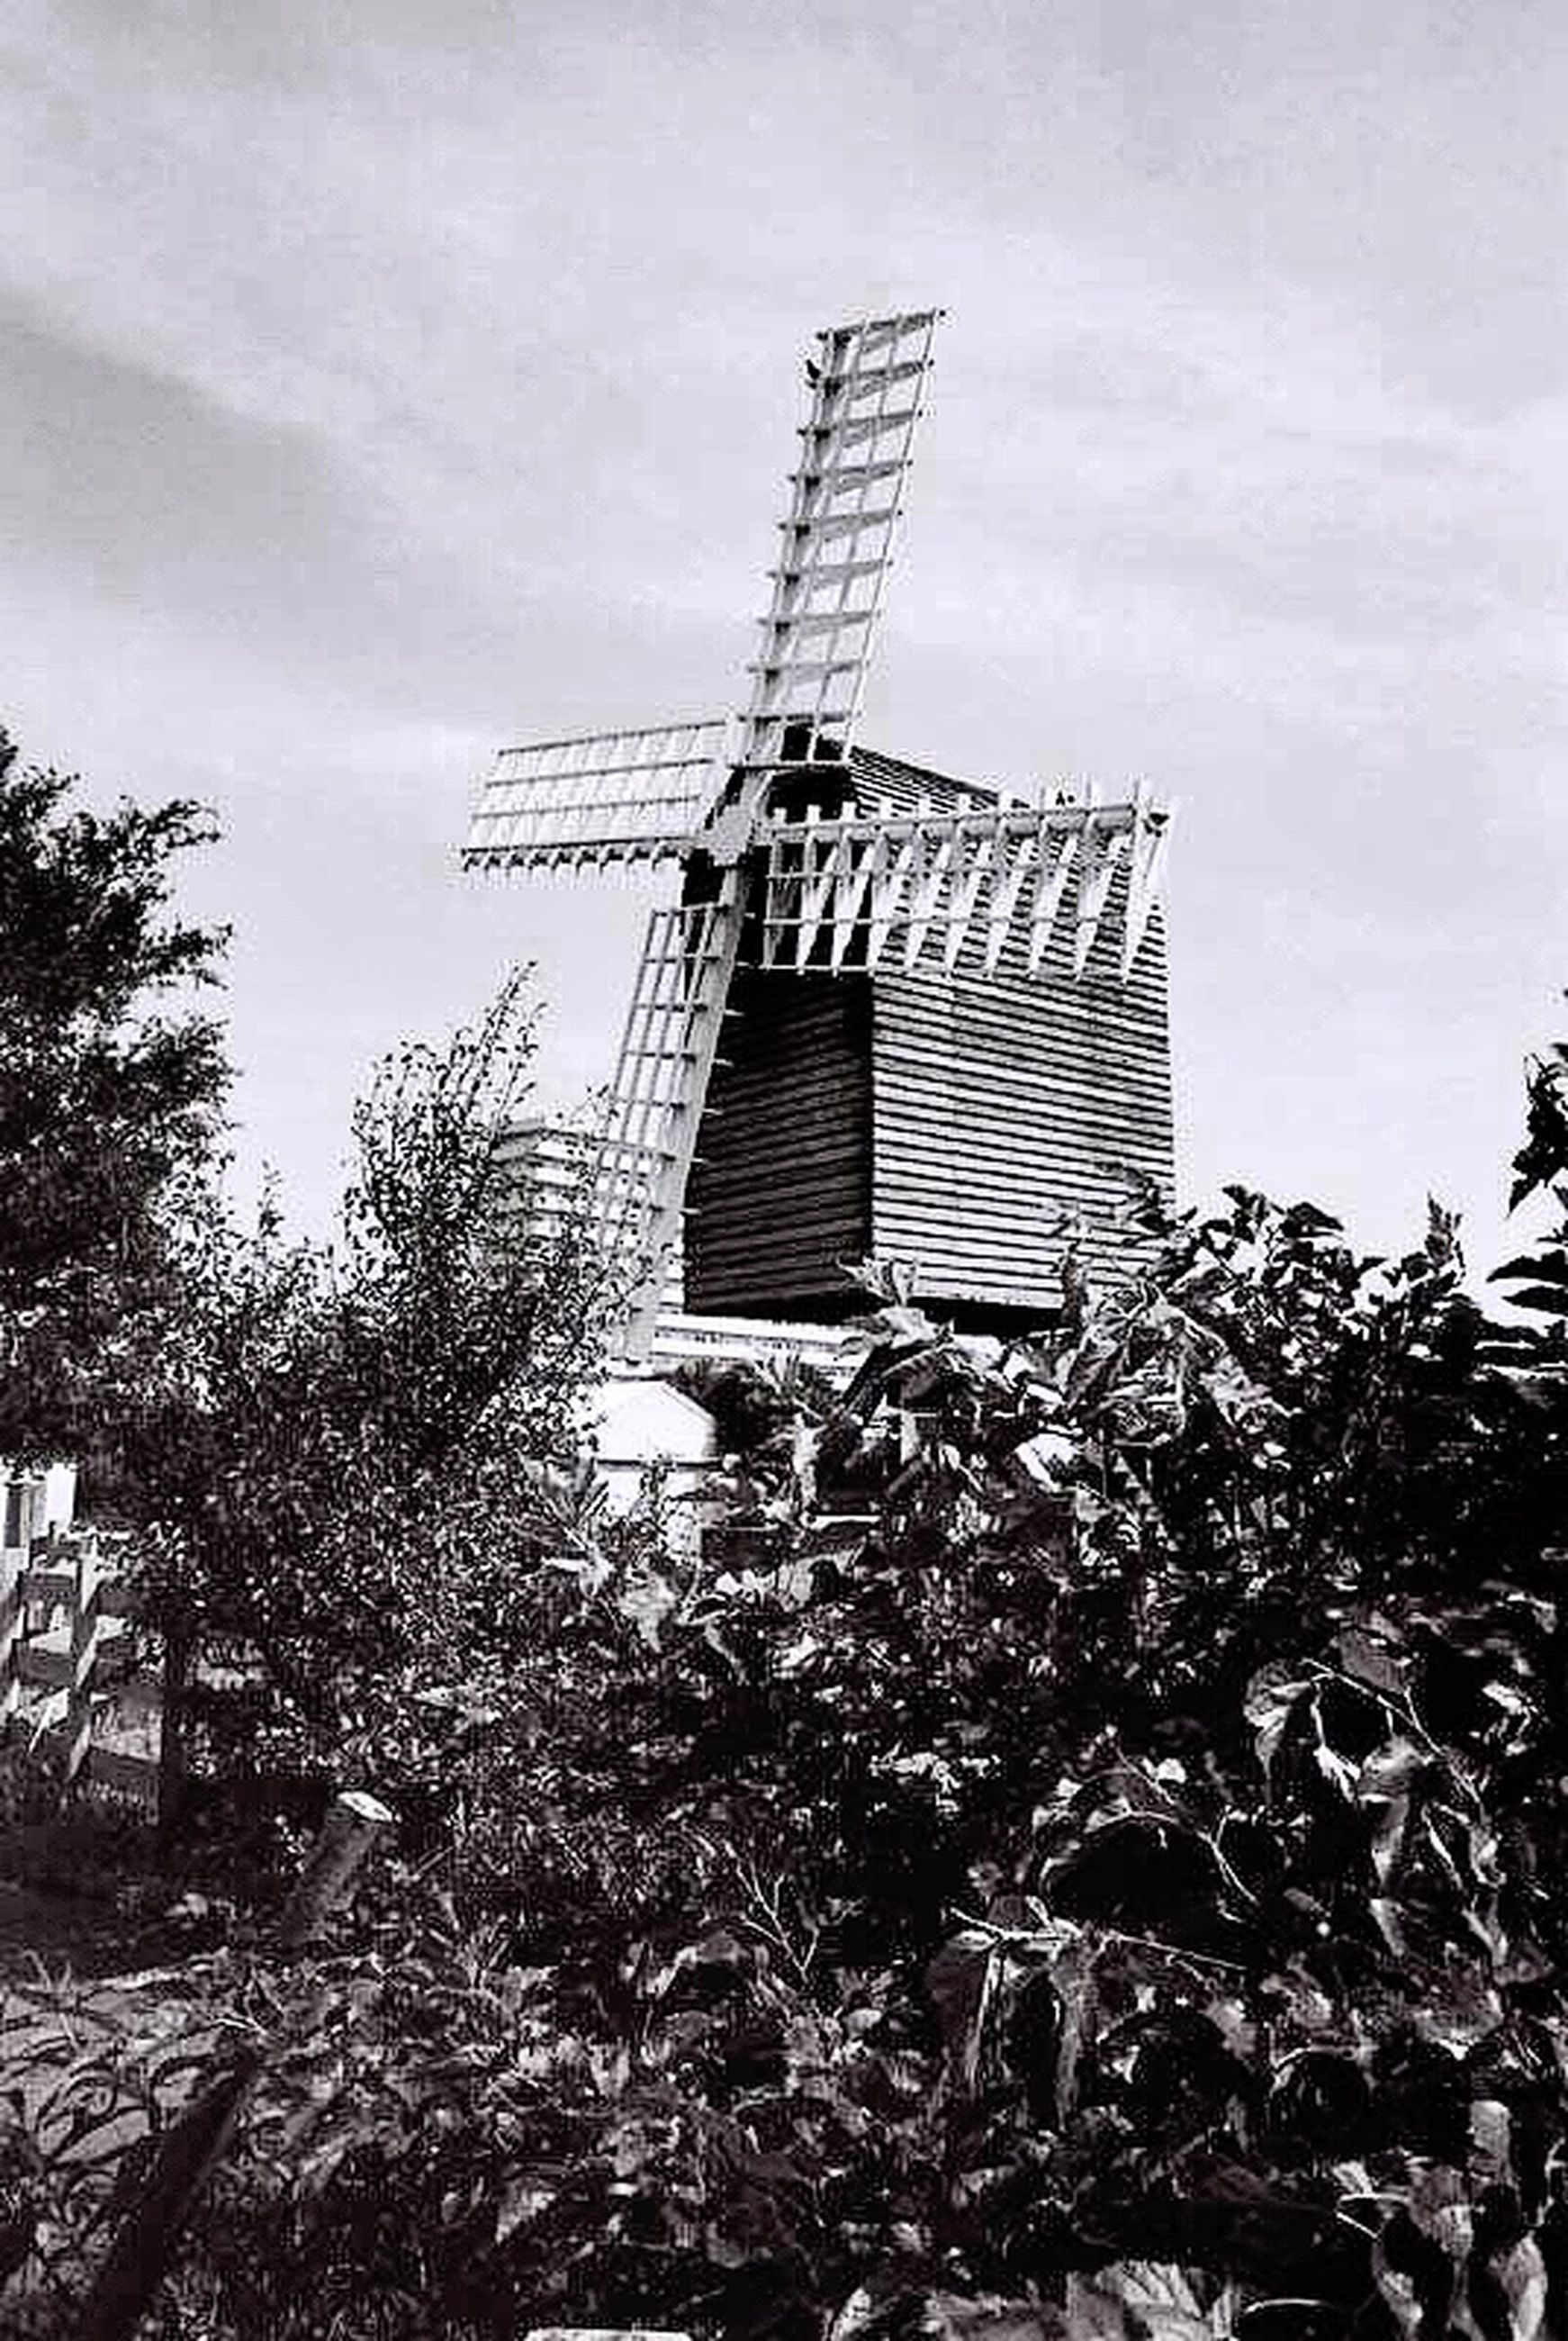 built structure, environmental conservation, windmill, renewable energy, architecture, fuel and power generation, alternative energy, wind turbine, traditional windmill, building exterior, wind power, sky, rural scene, low angle view, field, tree, technology, plant, growth, day